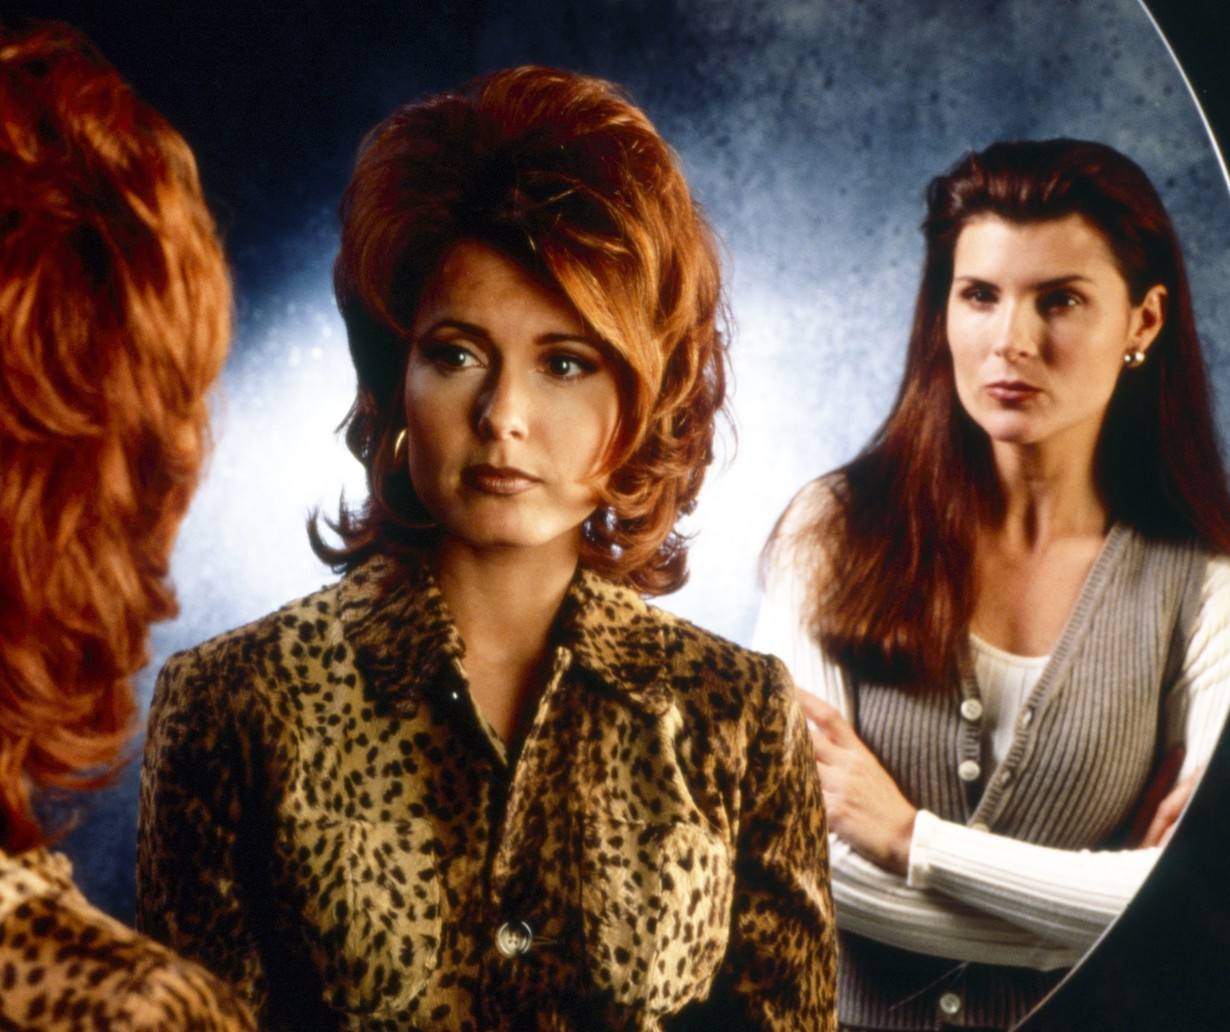 yr lauren sheila THE BOLD AND THE BEAUTIFUL, from left: Tracey E. Bregman, Kimberlin Brown, 1990s, 1987– . ph: Monty Brinton /© CBS / Courtesy Everett Collection